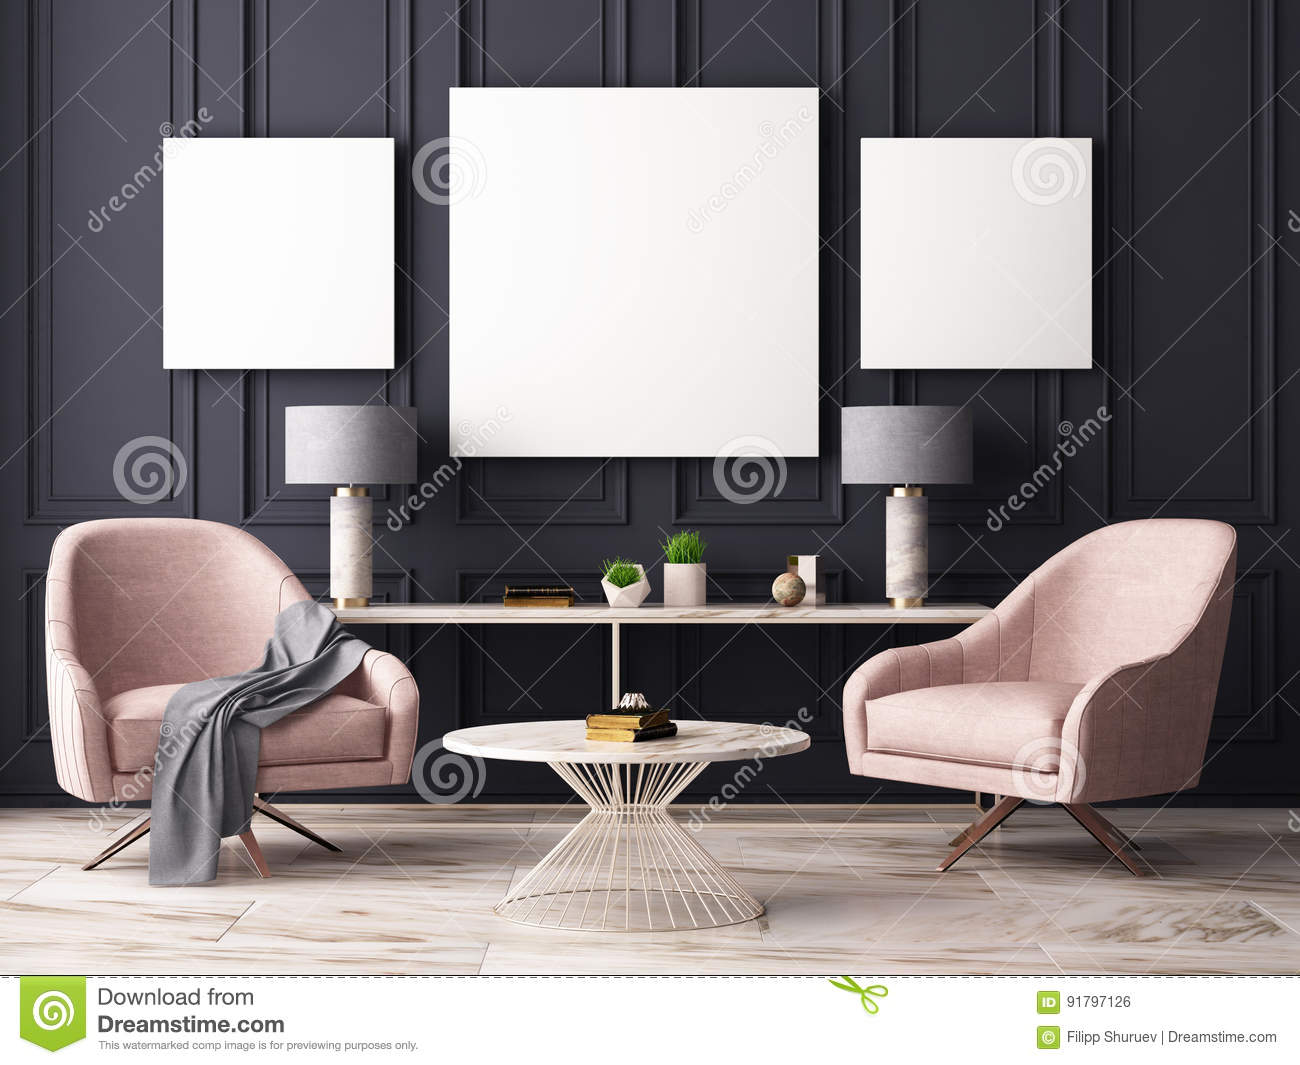 Mock Up Poster In A Pastel Interior With Armchairs And A Table. 12D